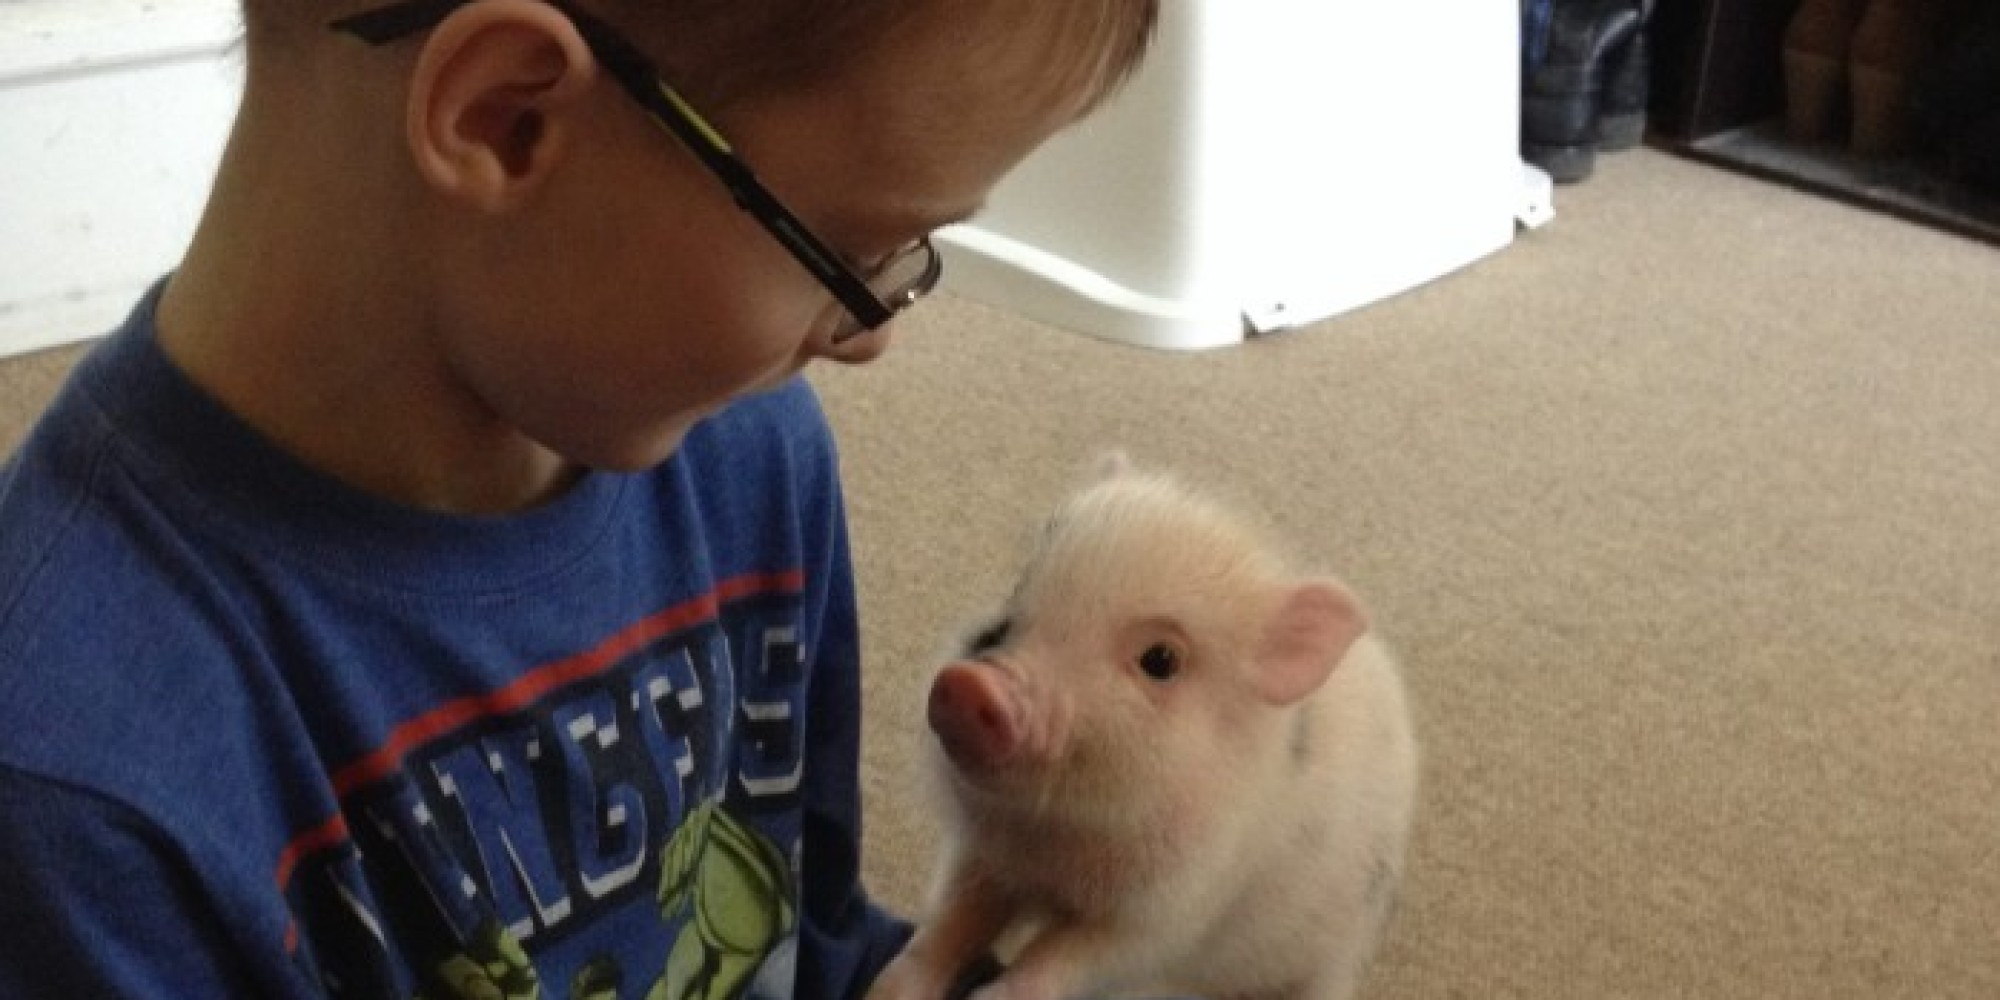 What It's Like To Have A Miniature Pig For A Pet